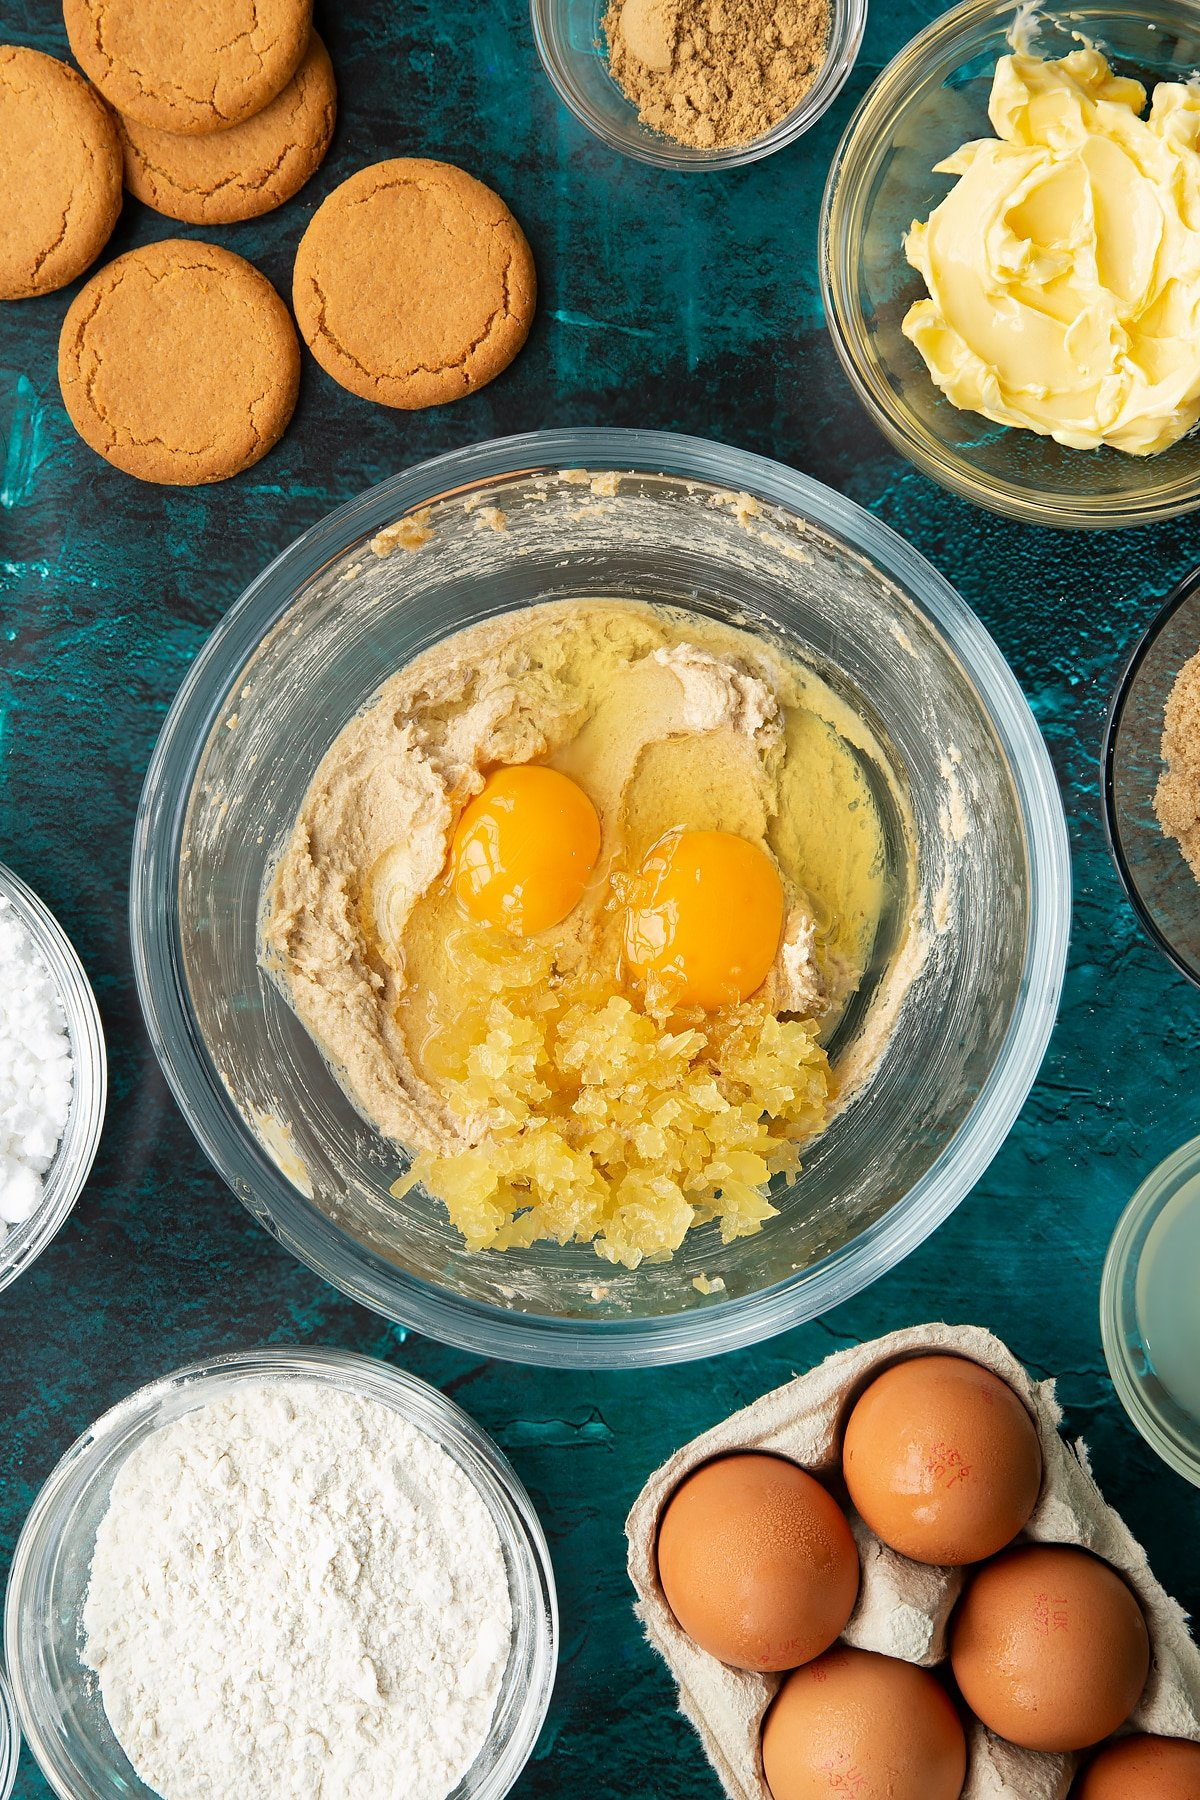 Butter and brown sugar beaten together in a glass mixing bowl with eggs, vanilla and chopped stem ginger on top. Ingredients to make gingerbread donuts surround the bowl.